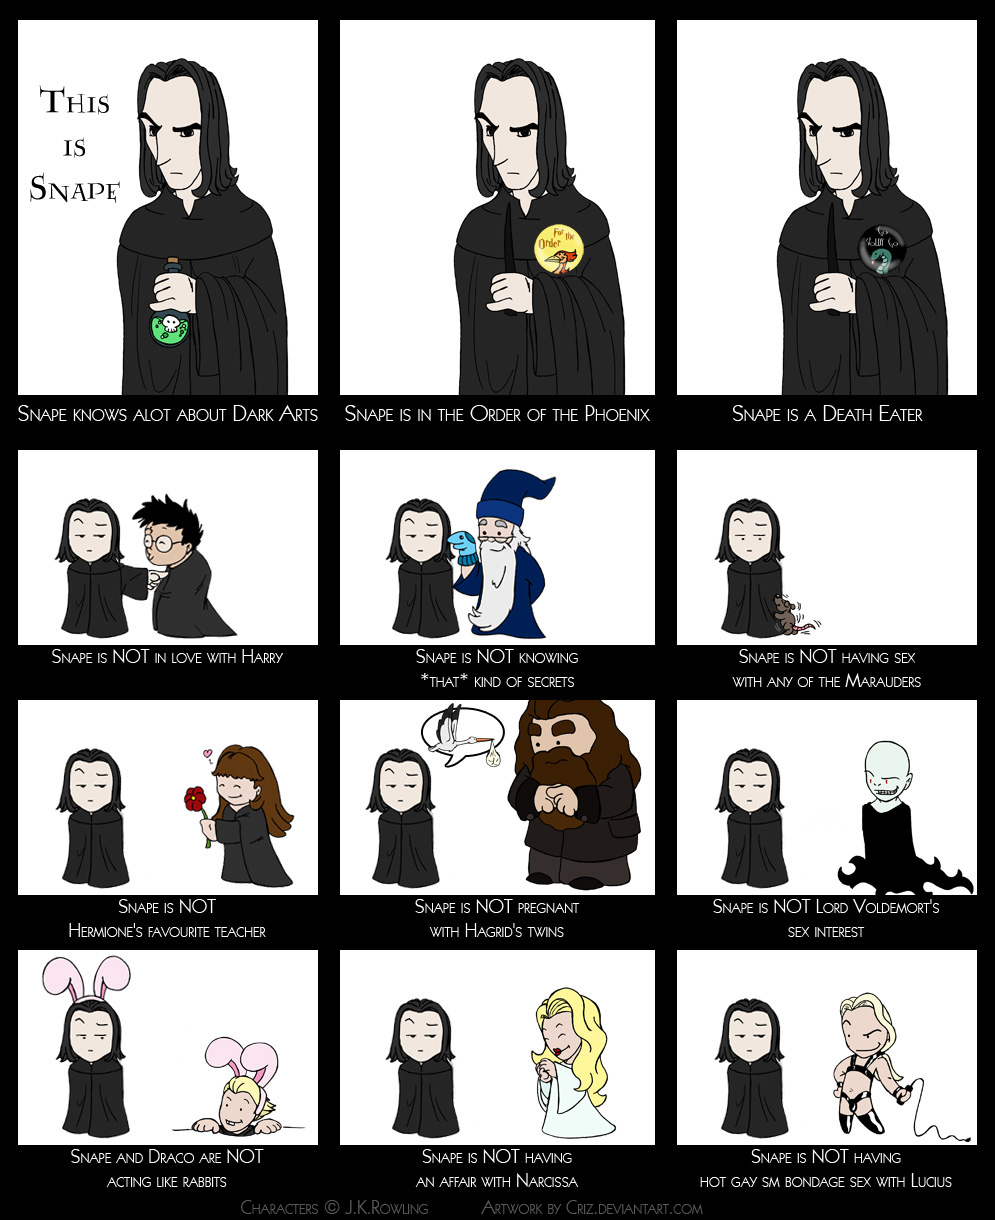 snape is